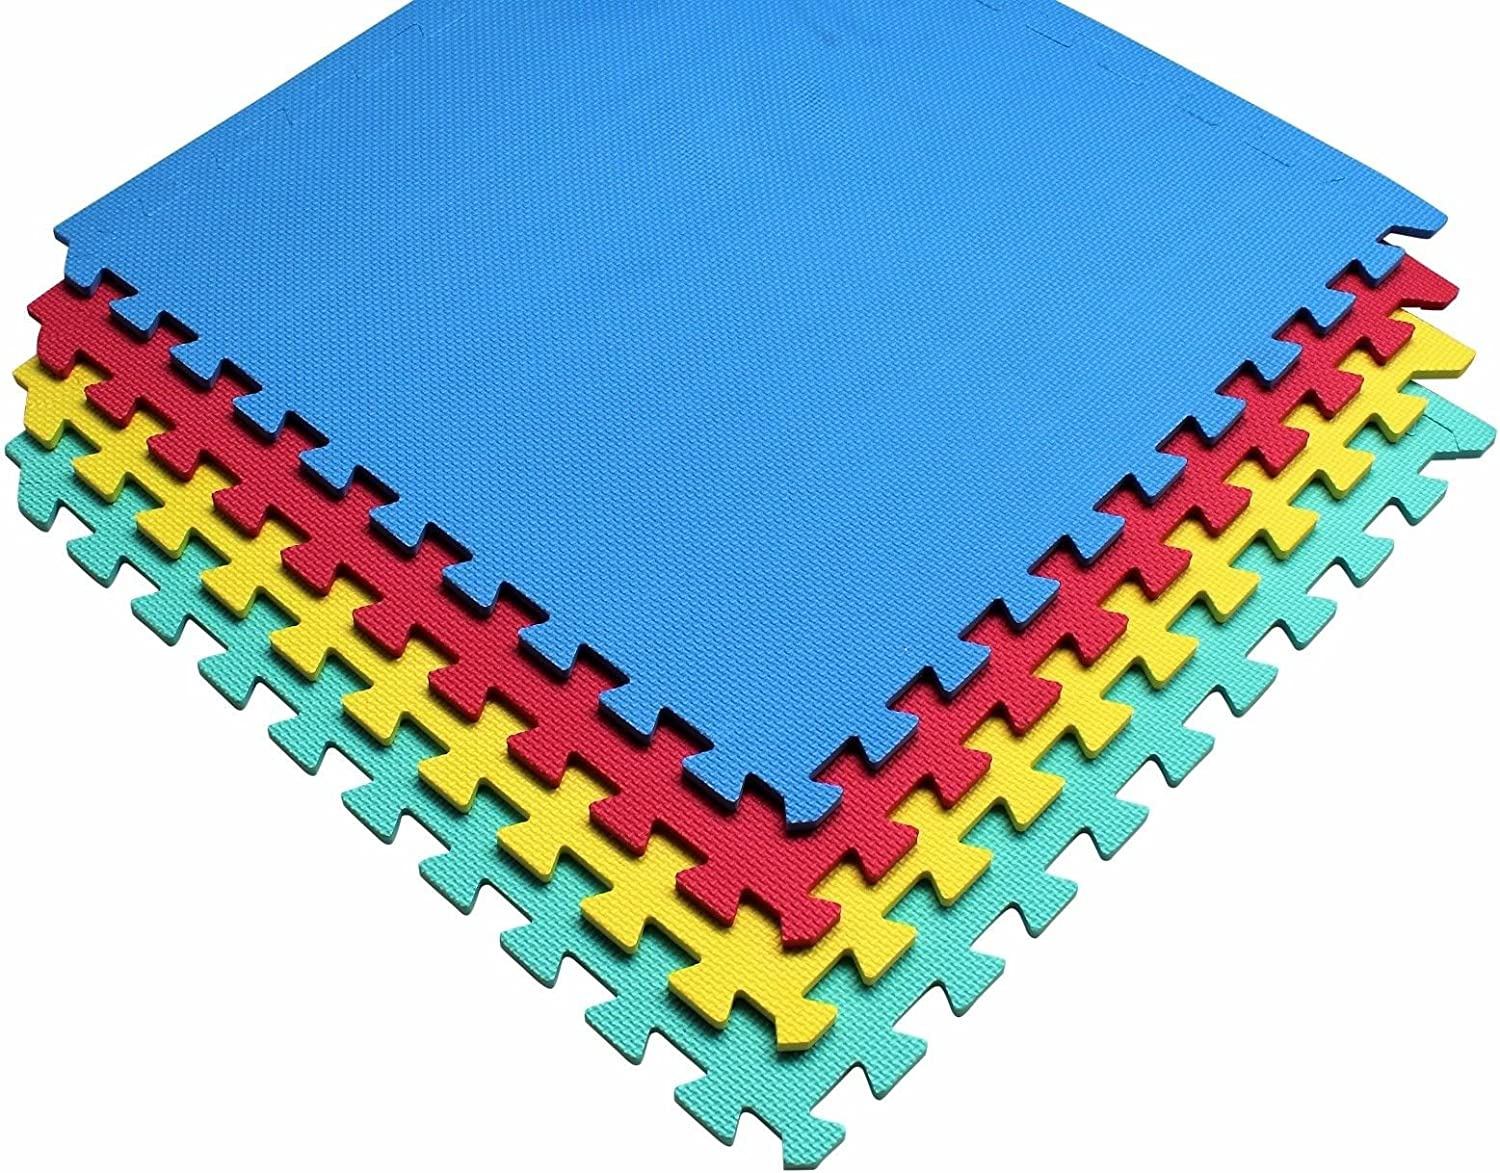 Home and Garden Products 96 SQ FT Interlocking EVA Soft Foam Exercise Floor Mats Play Toy Multicoloured